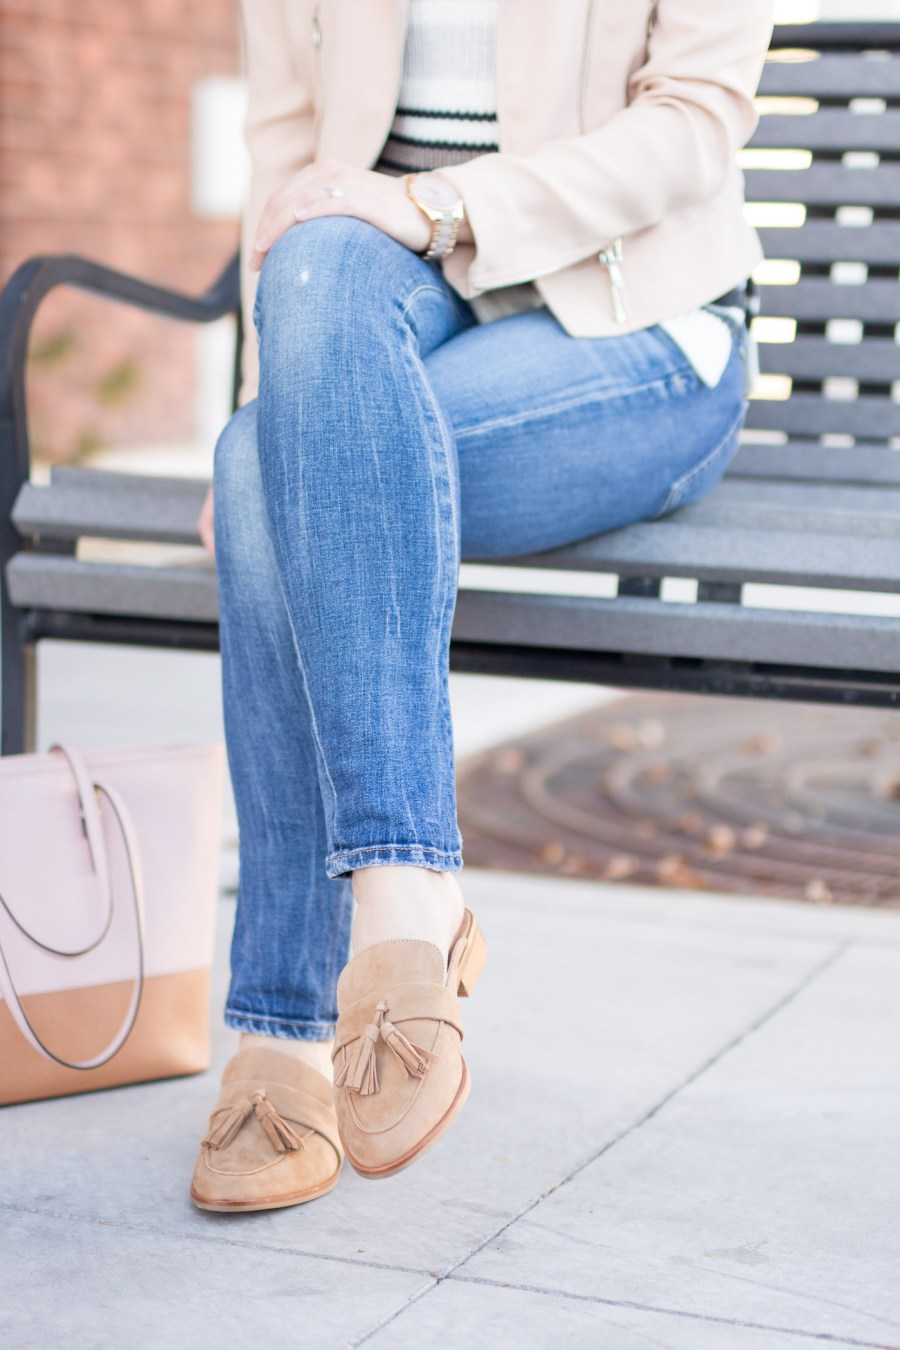 How To Wear Flat Mules In Winter, winter outfit idea, fashion blog, Treats and Trends, Steve Madden tassel mules